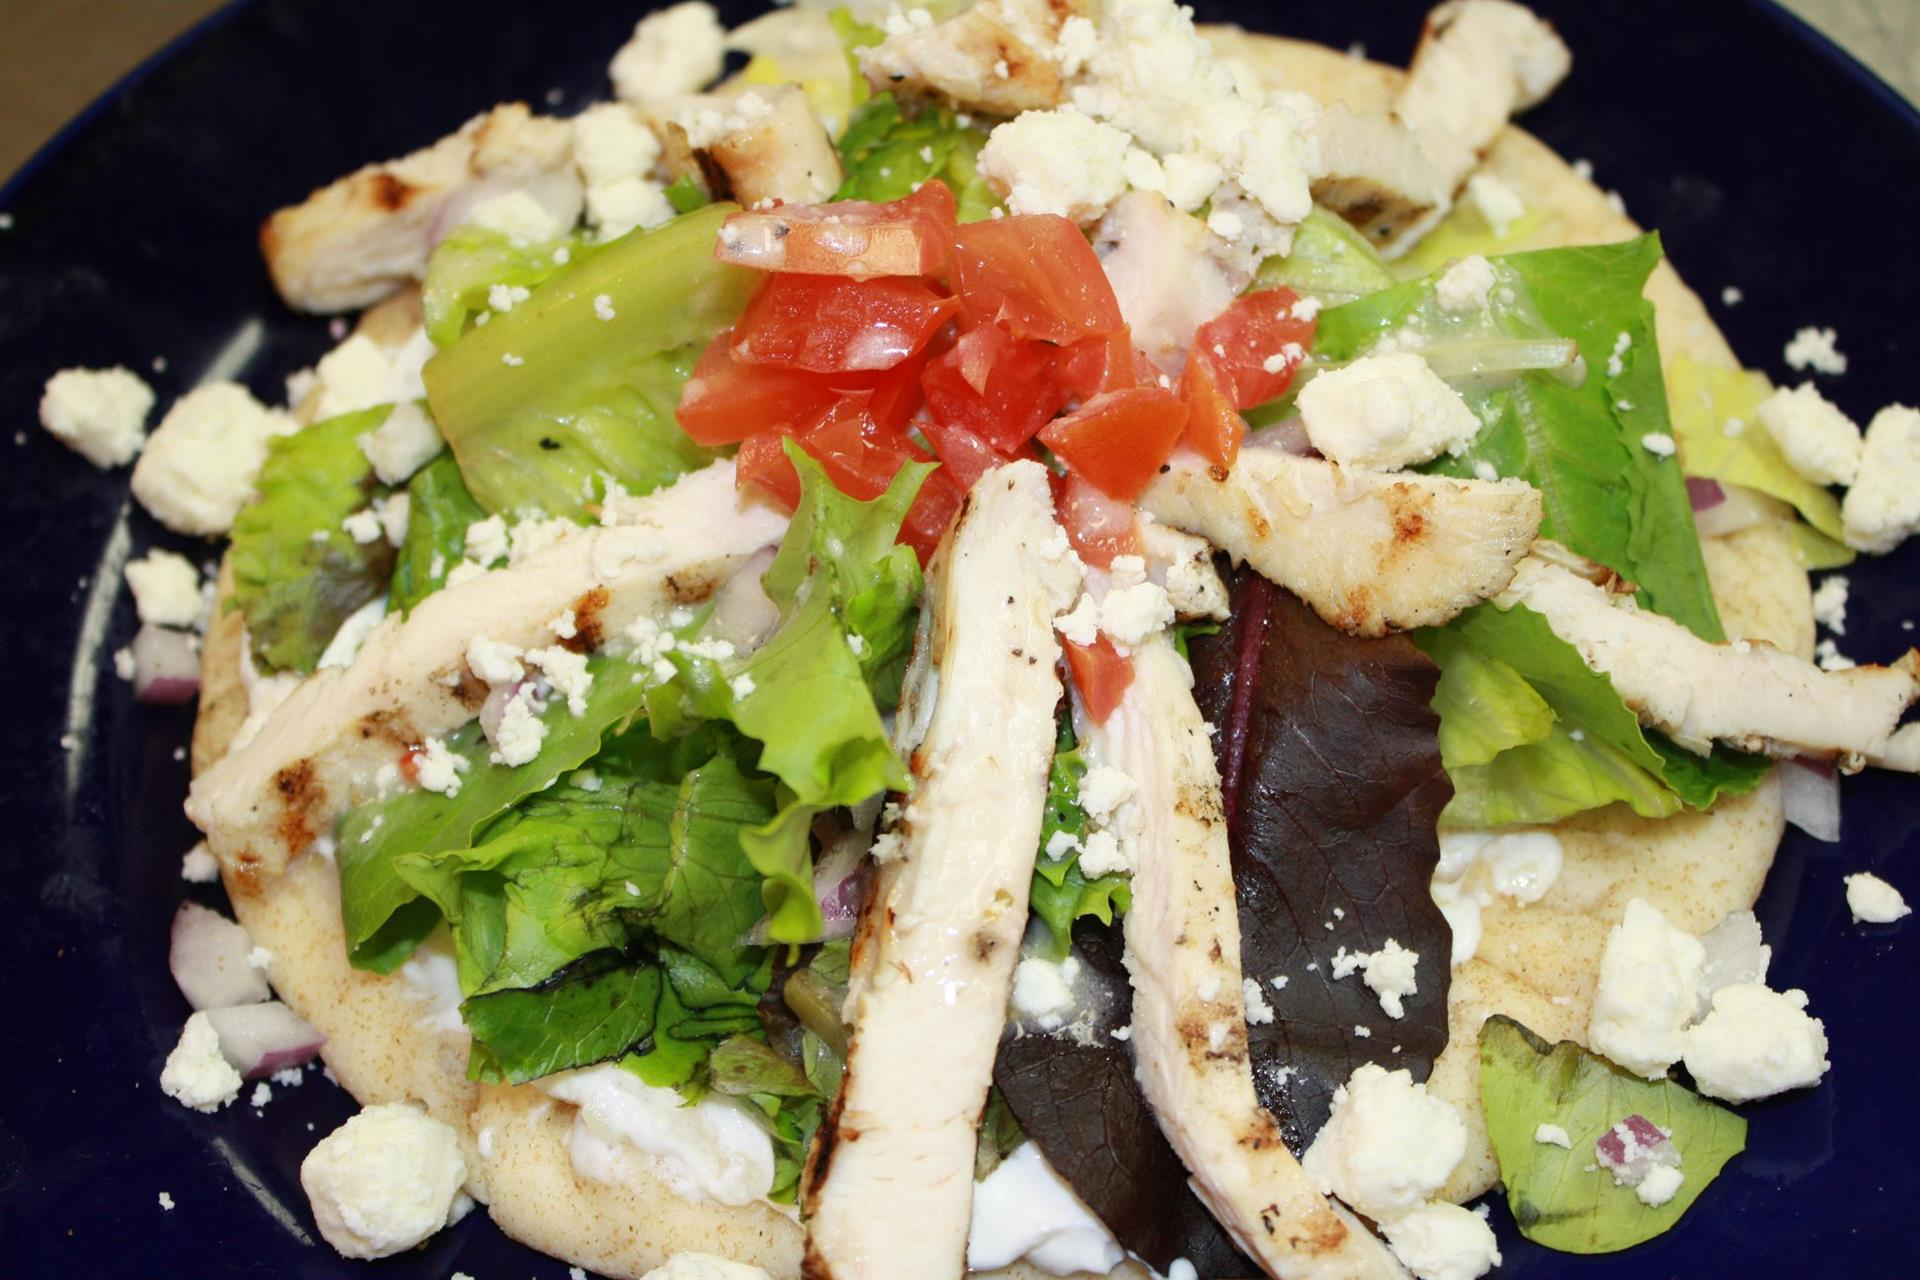 a salad with grilled chicken, feta cheese, and tomato